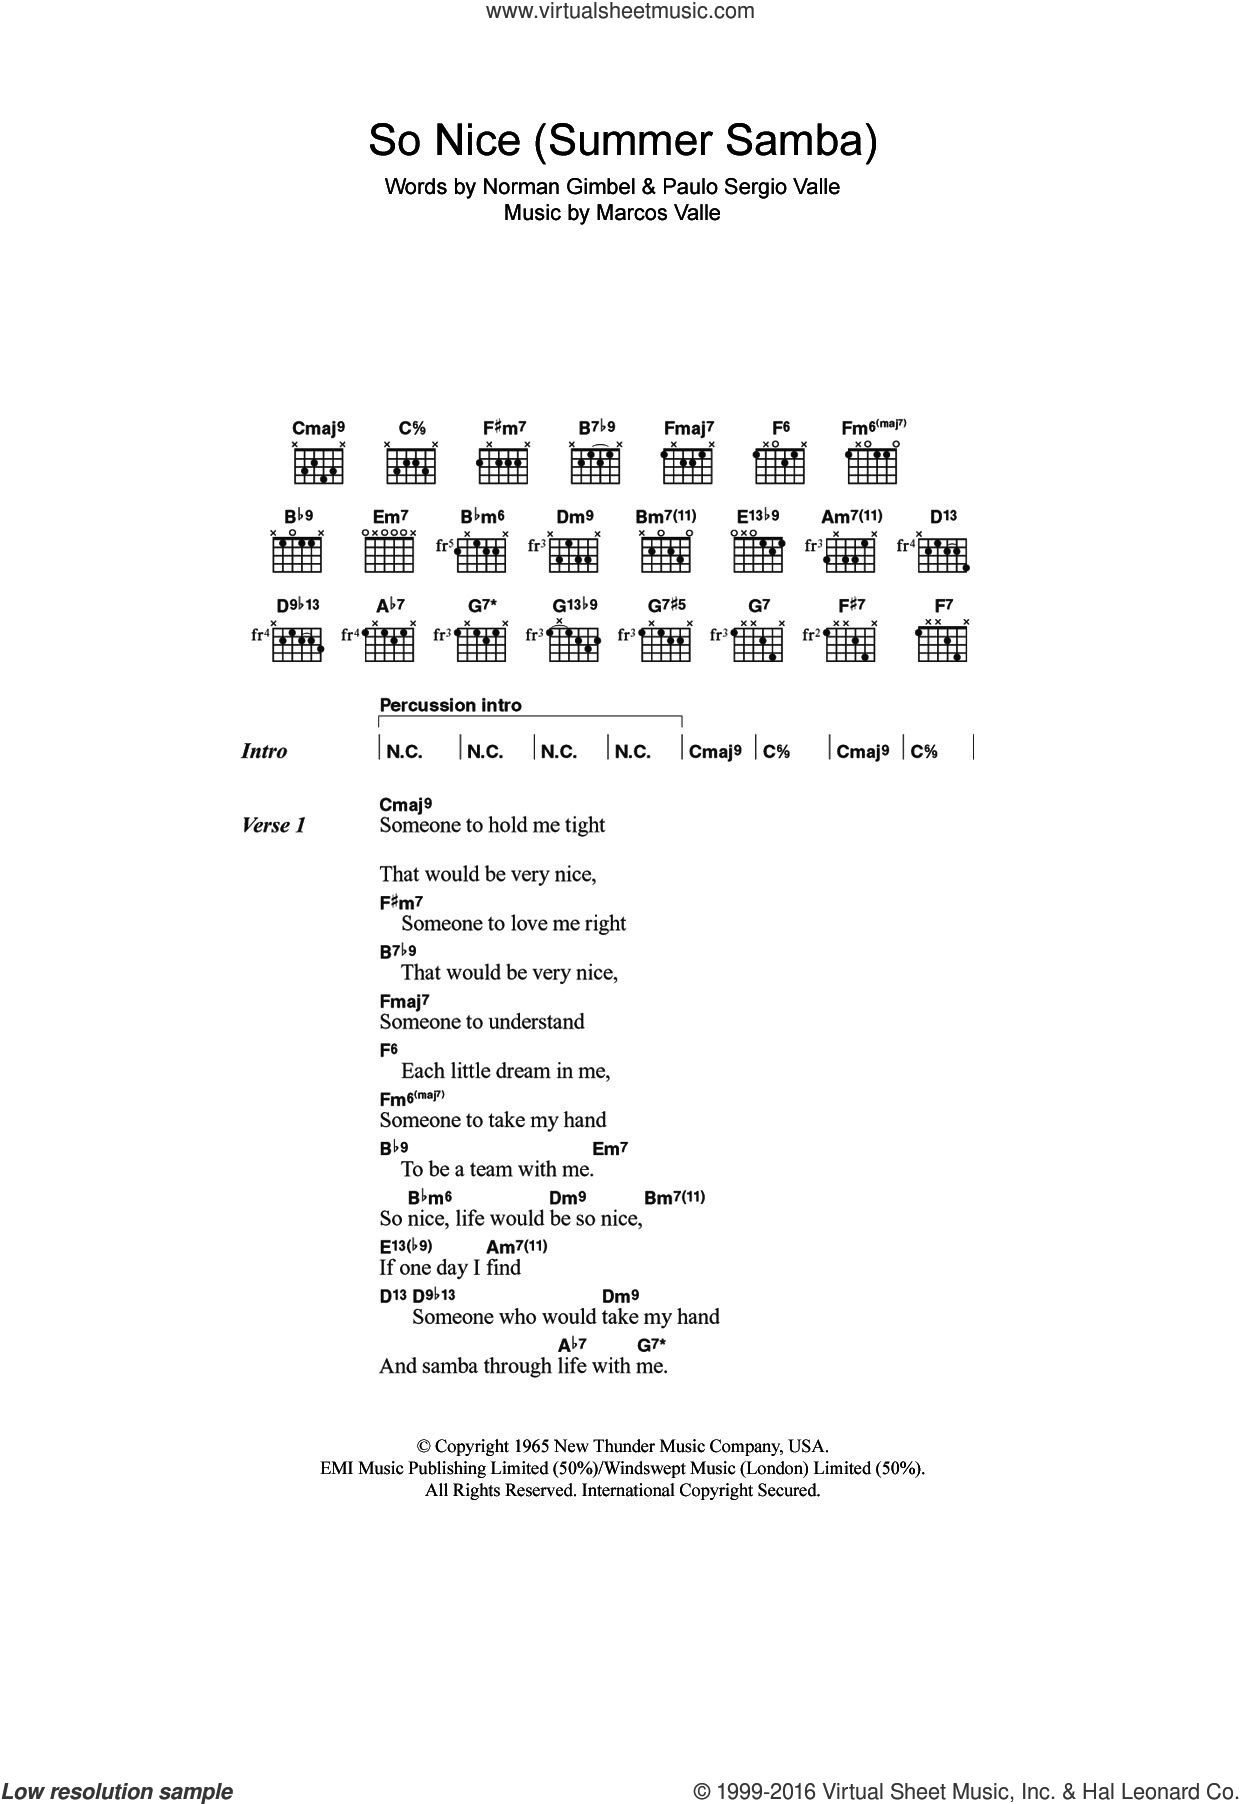 So Nice (Summer Samba) sheet music for guitar (chords) by Astrud Gilberto, Bebel Gilberto, Marcos Valle, Norman Gimbel and Paulo Sergio Valle, intermediate skill level